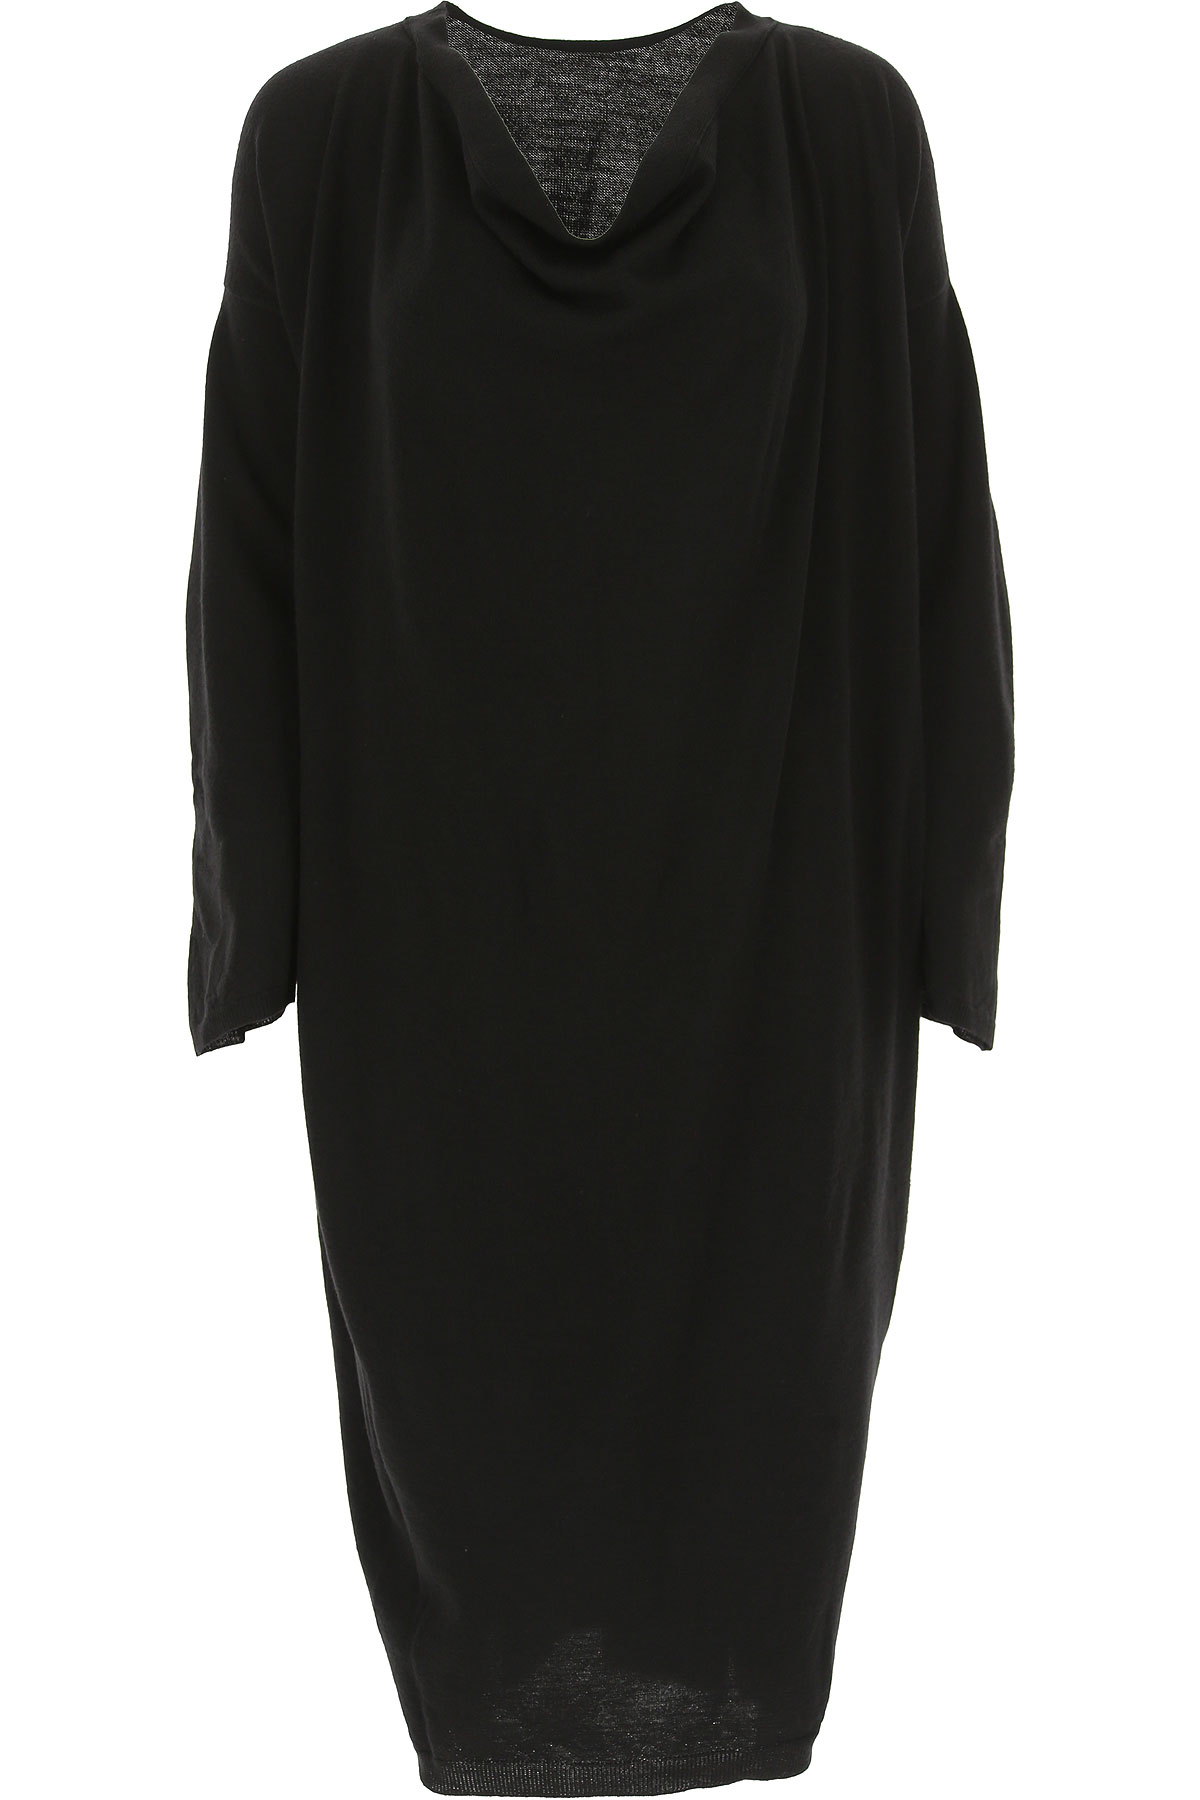 Image of Liviana Conti Dress for Women, Evening Cocktail Party, Black, Wool, 2017, 2 4 6